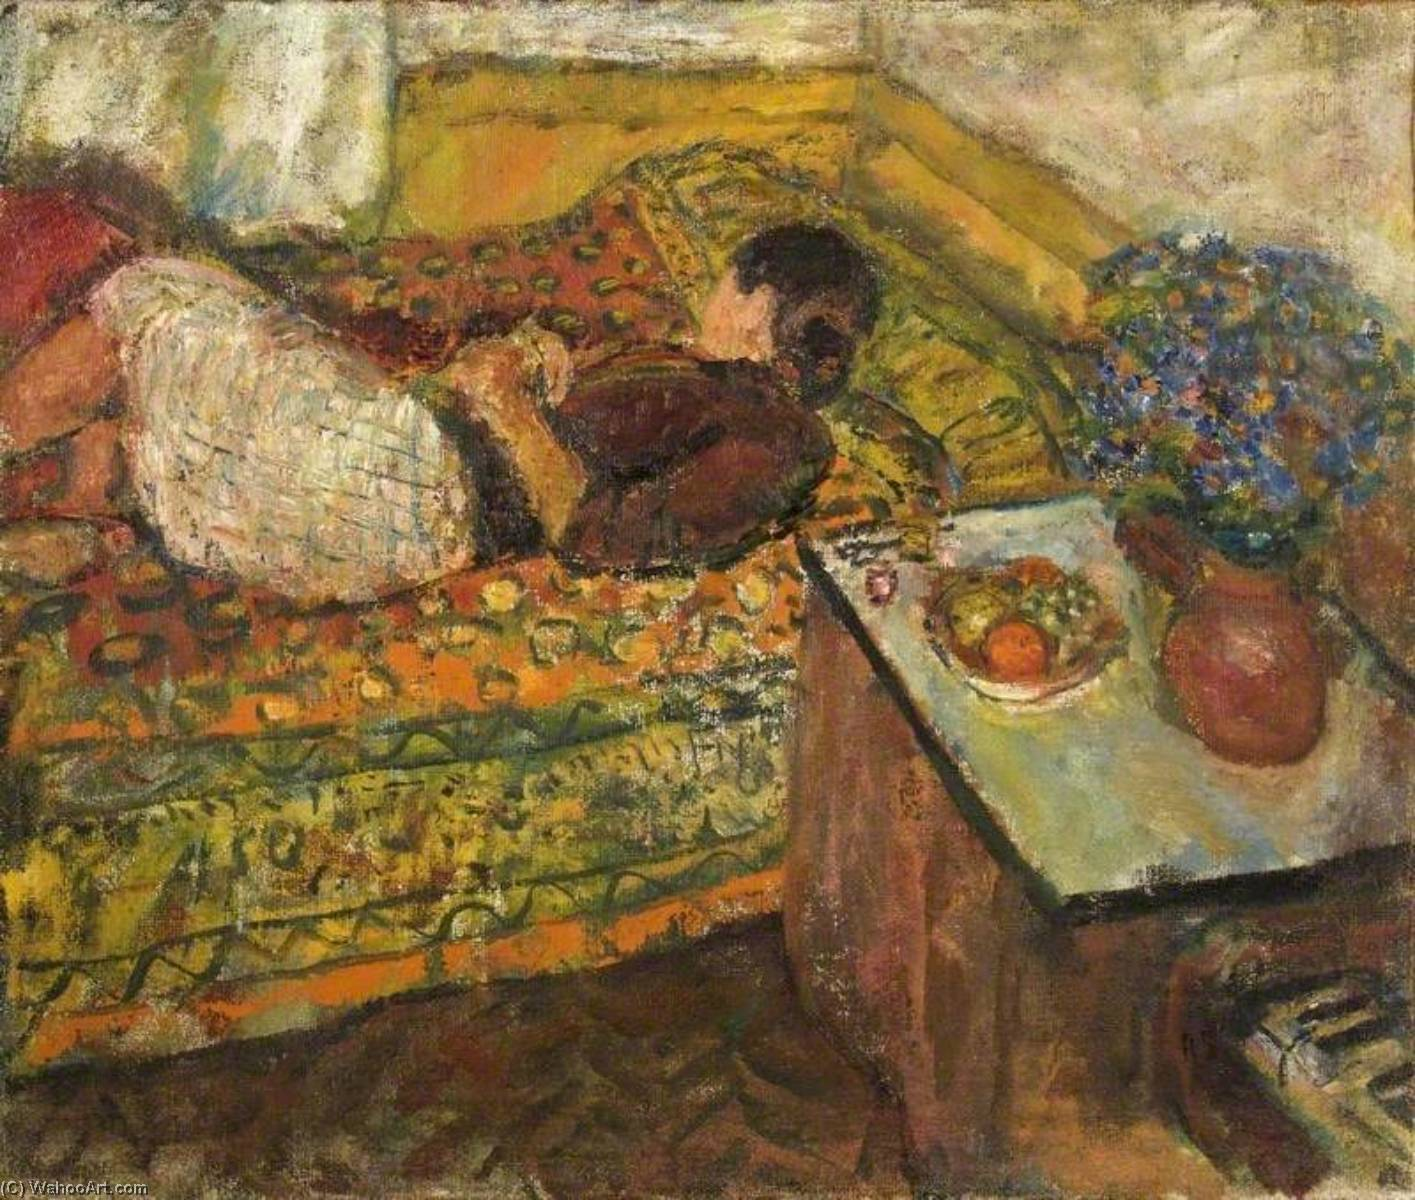 | sieste de Ruskin Spear | Most-Famous-Paintings.com